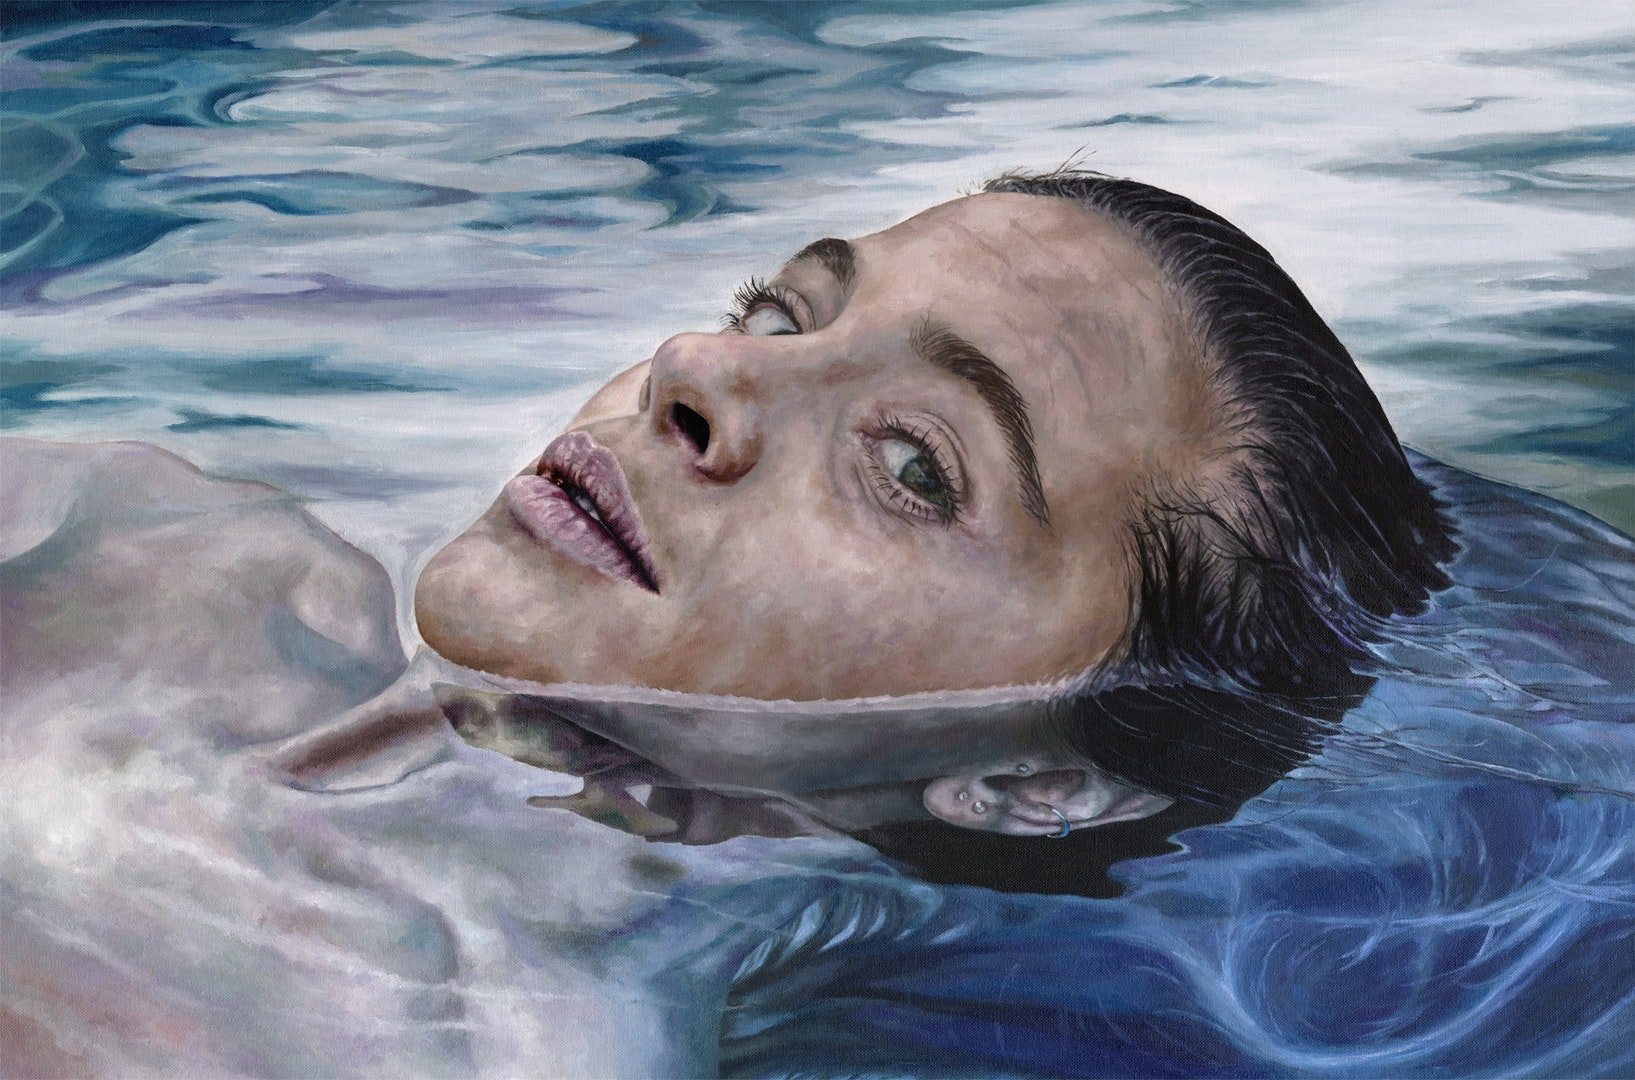 Corinne Young  Treading Water  Oil on Canvas, 61 x 91.5 x 4 cm